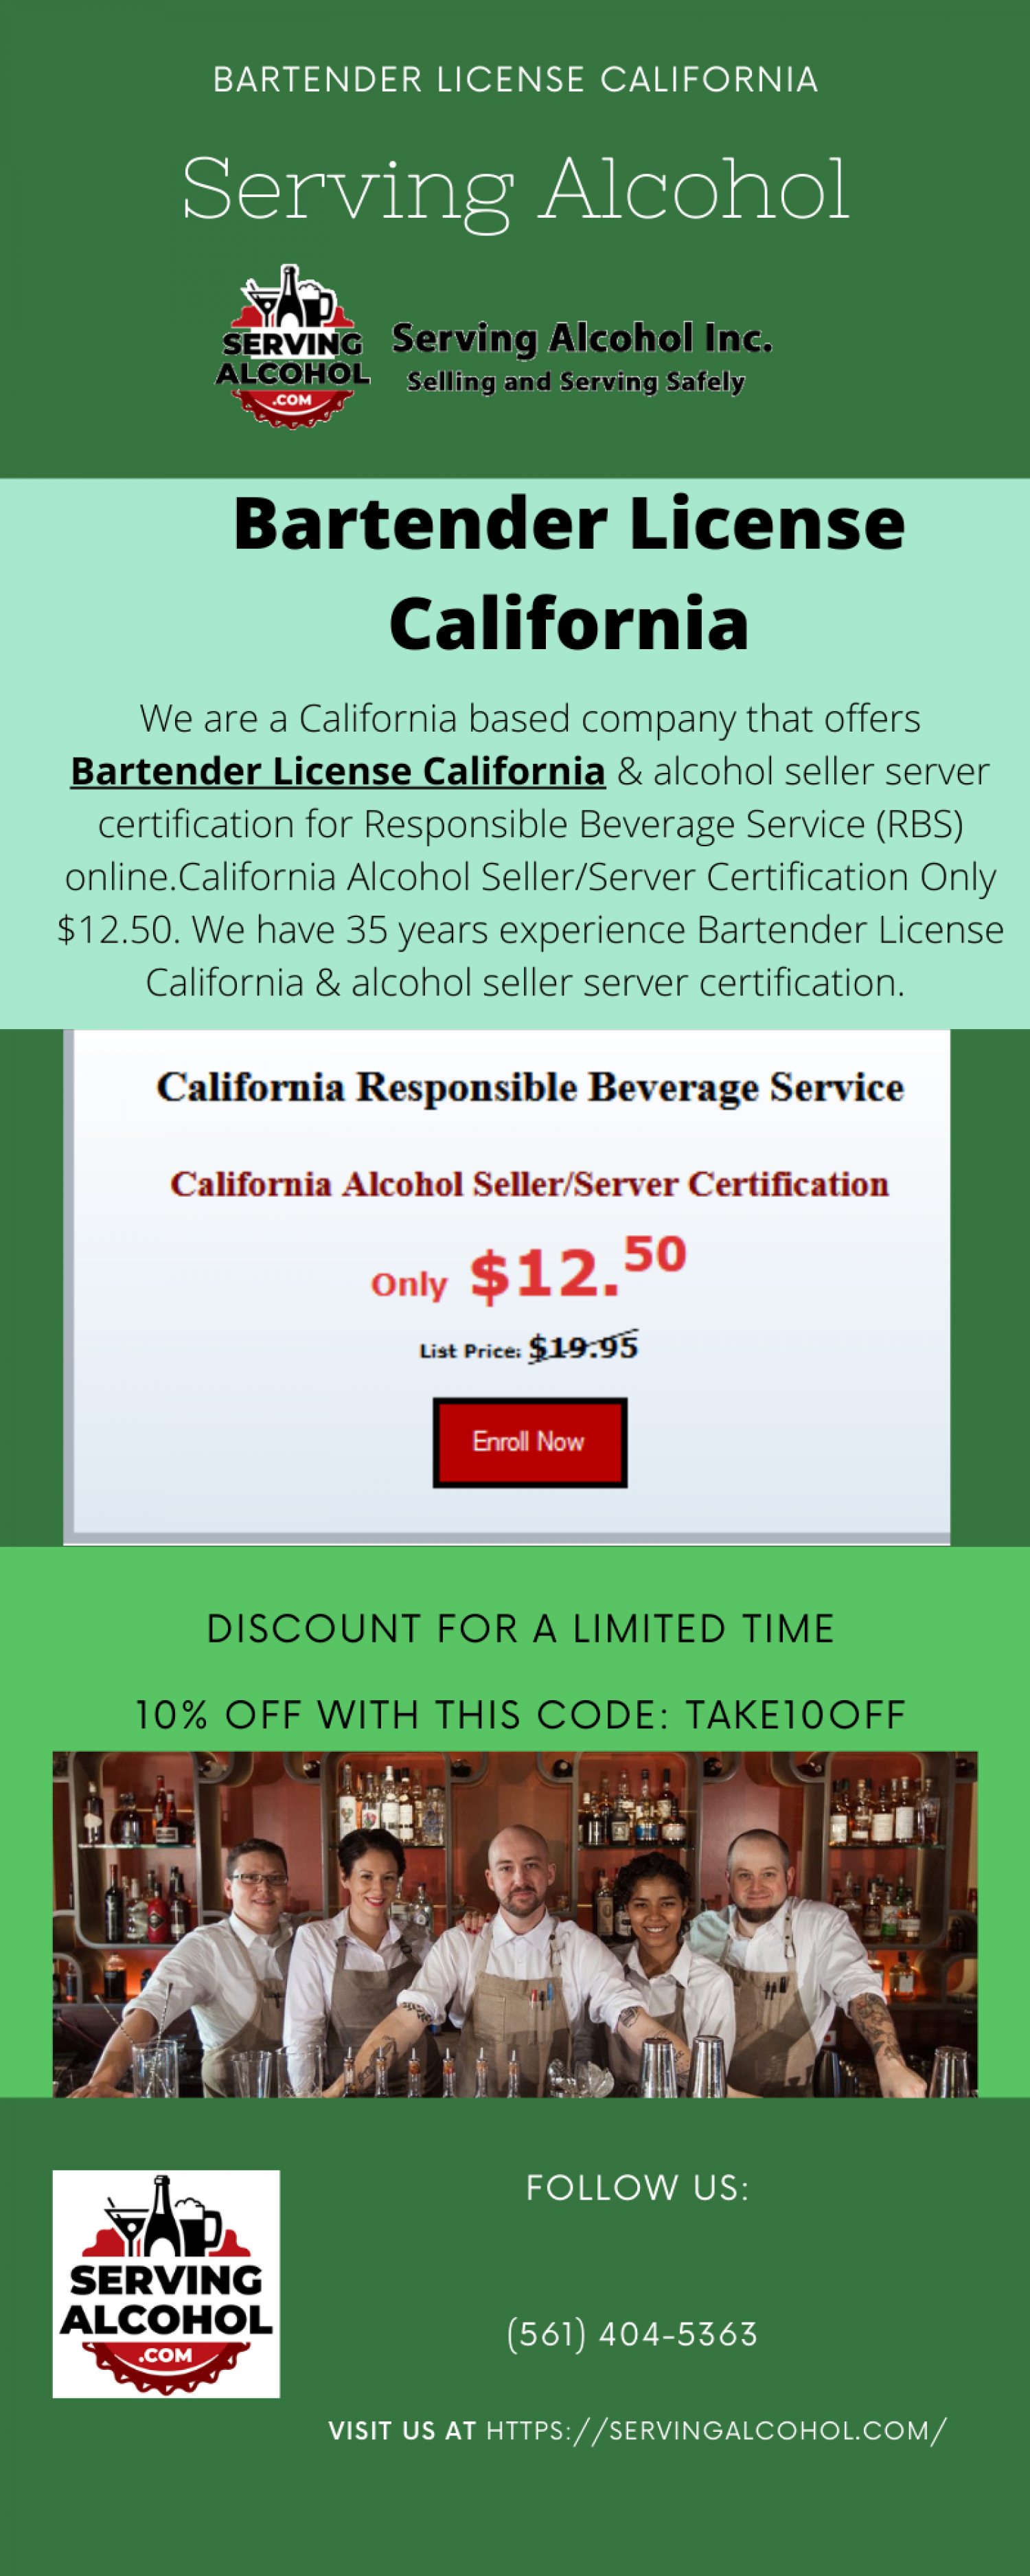 Bartender License California Infographic